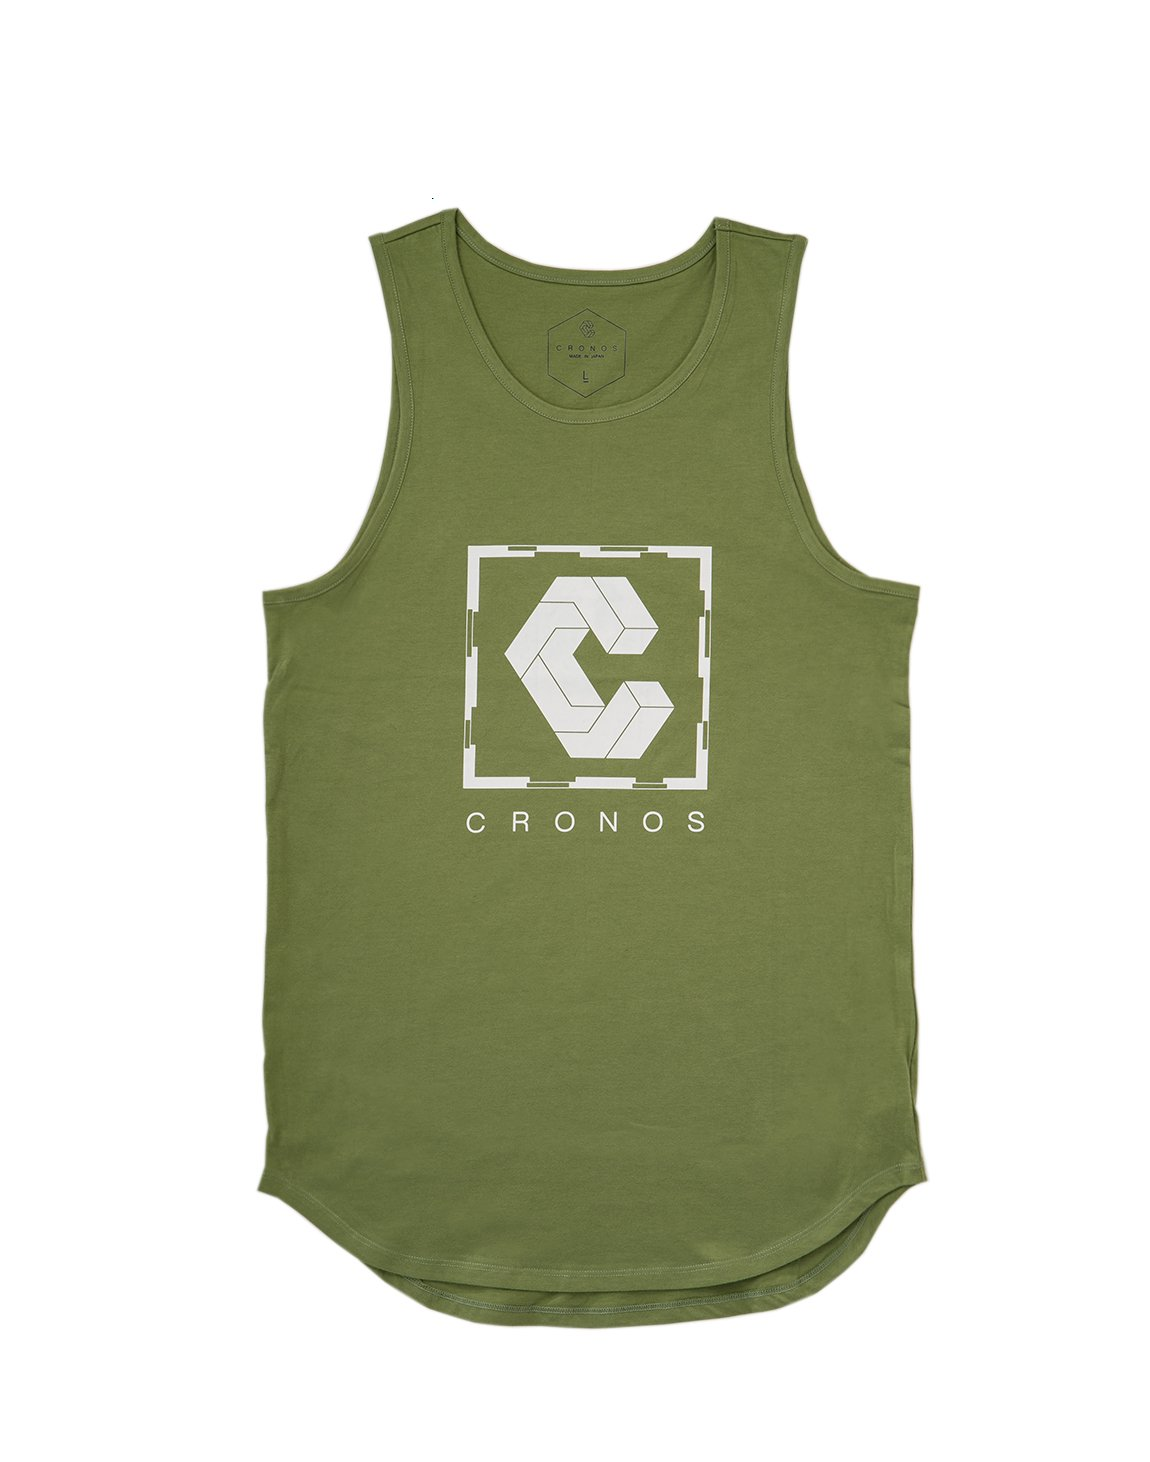 <img class='new_mark_img1' src='https://img.shop-pro.jp/img/new/icons1.gif' style='border:none;display:inline;margin:0px;padding:0px;width:auto;' />CRONOS SQUARE LOGO TANK TOP 【OLIVE&KHAKI】